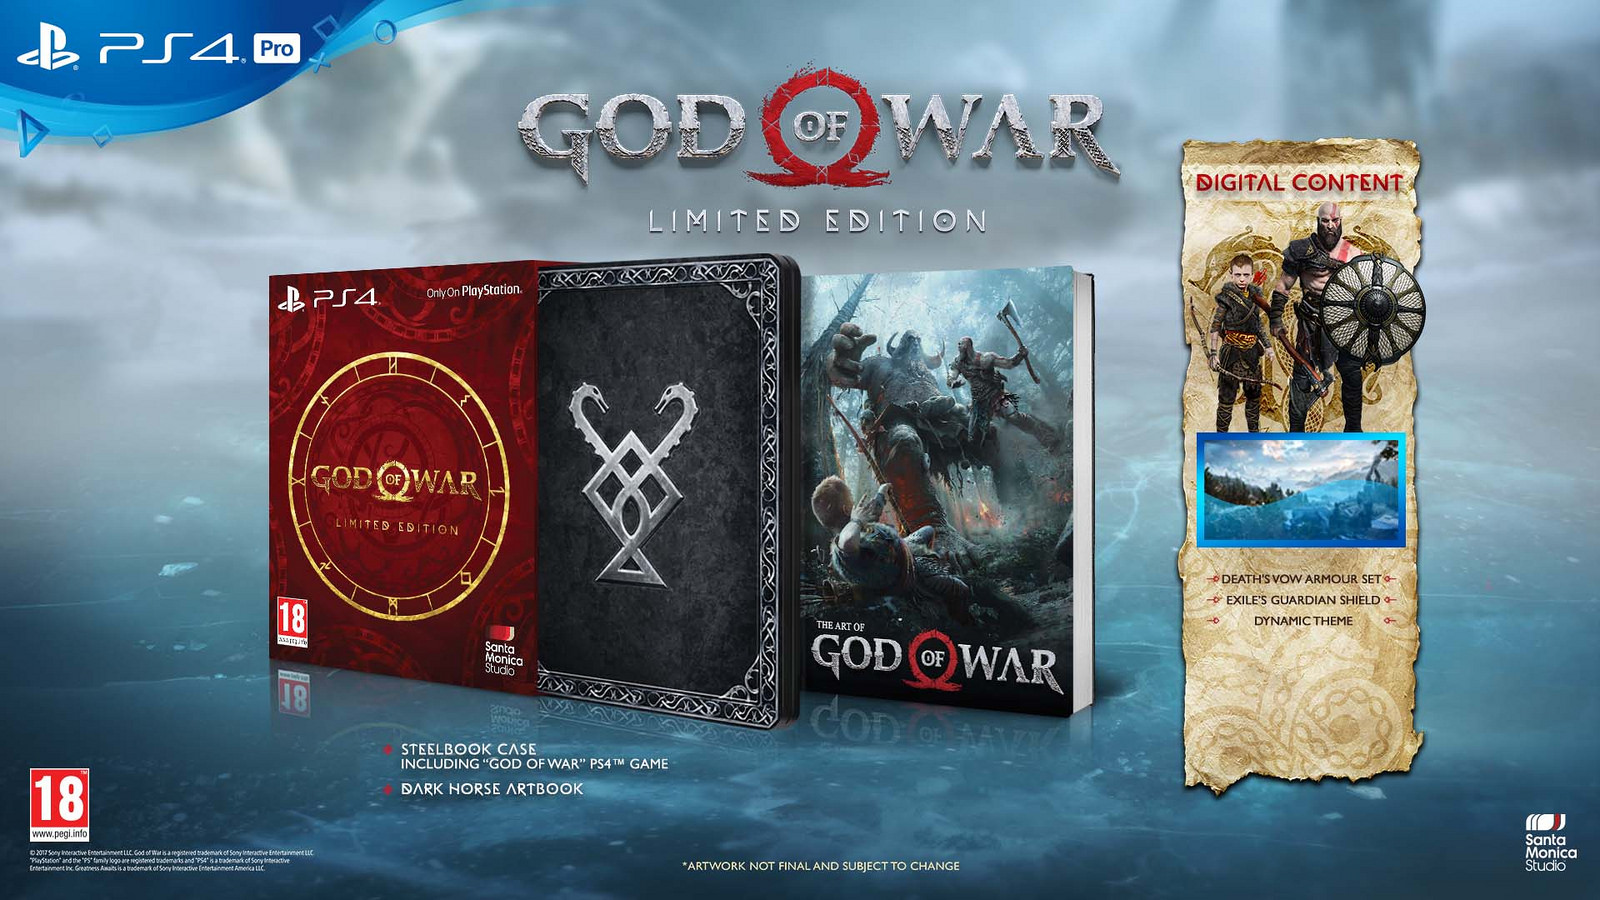 God Of War PS4 Release Date Confirmed